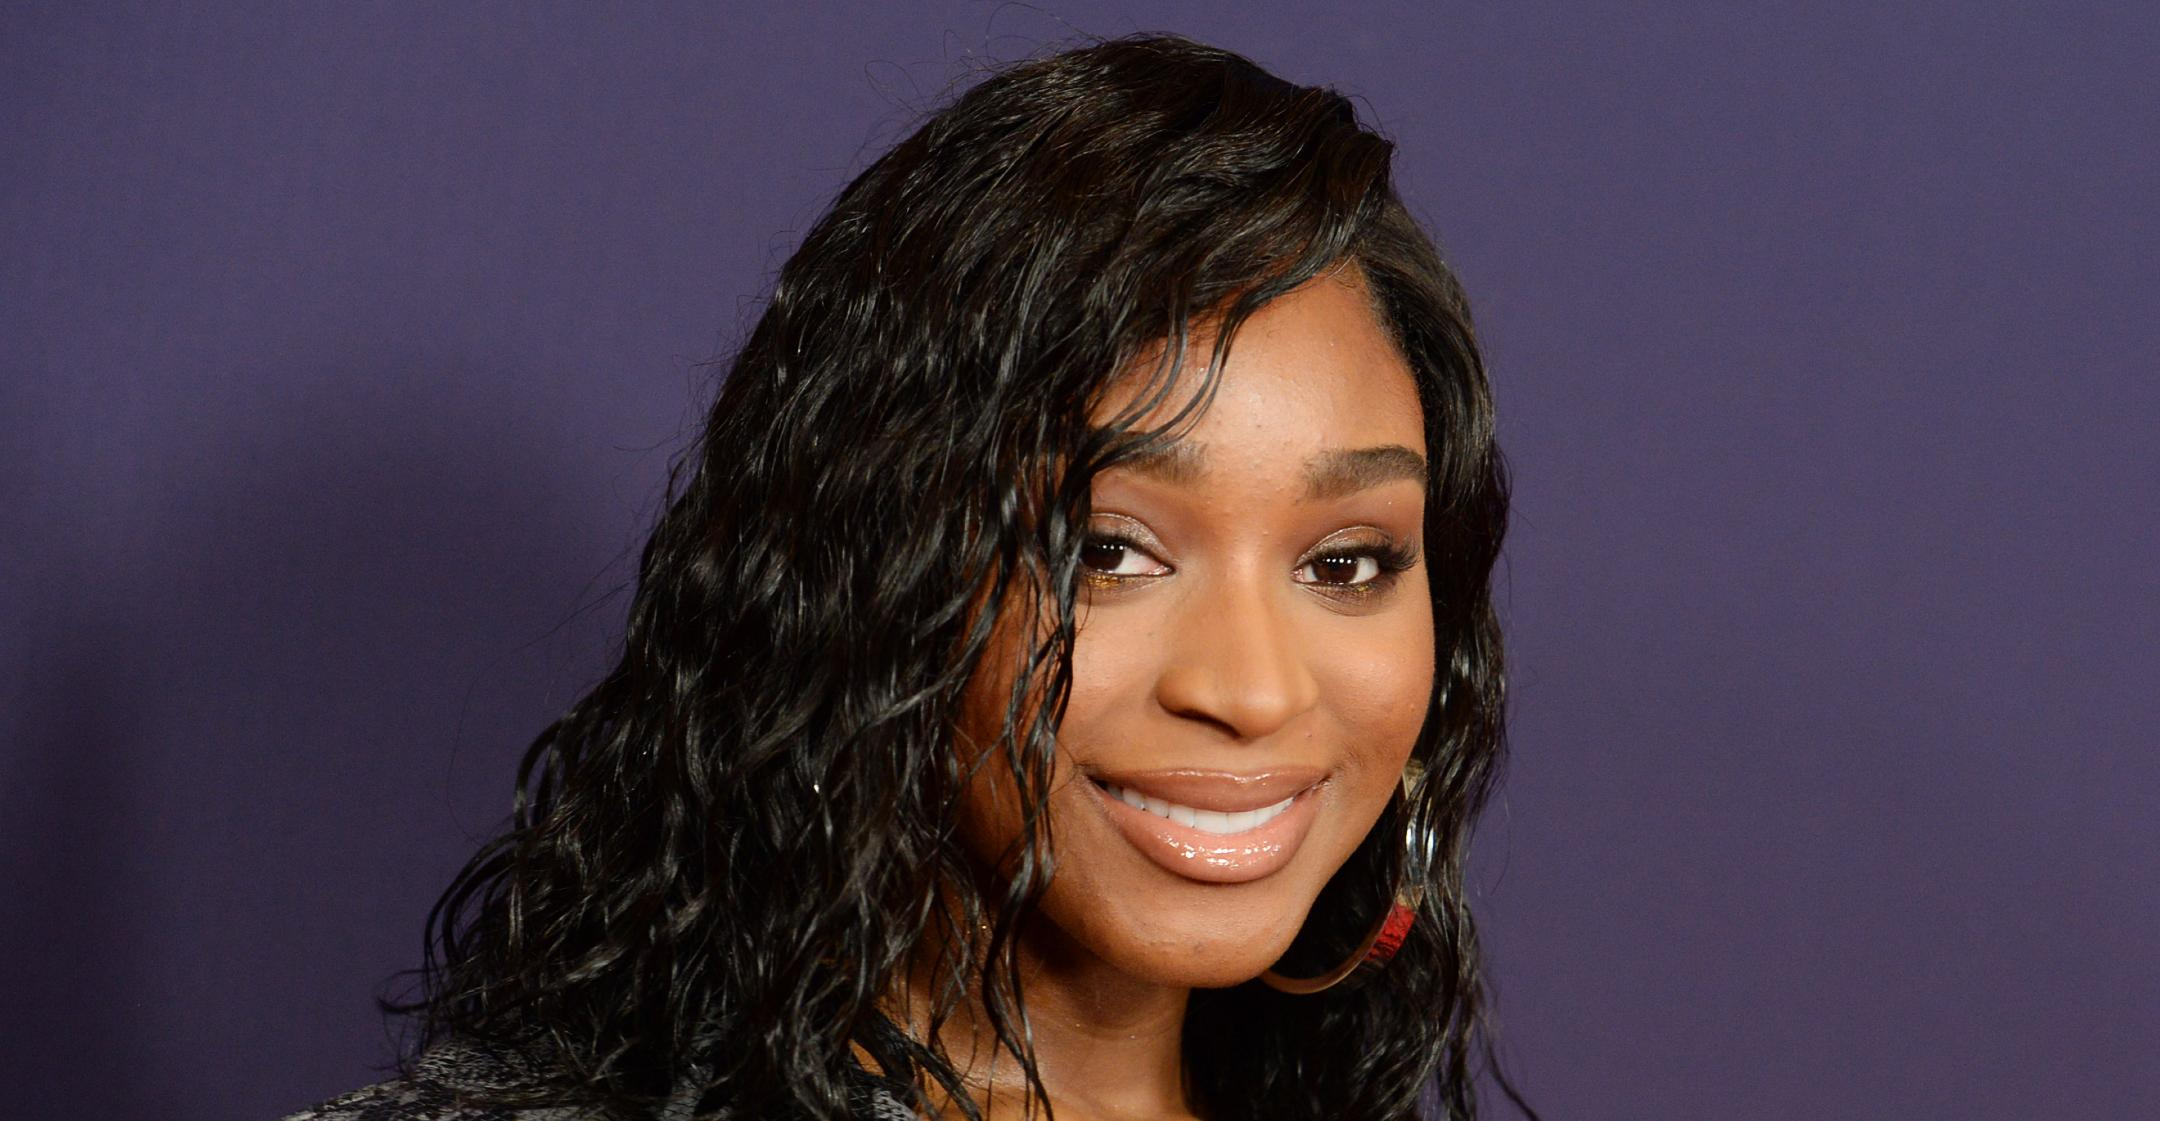 recording new music really helped normani cope with moms cancer diagnosis